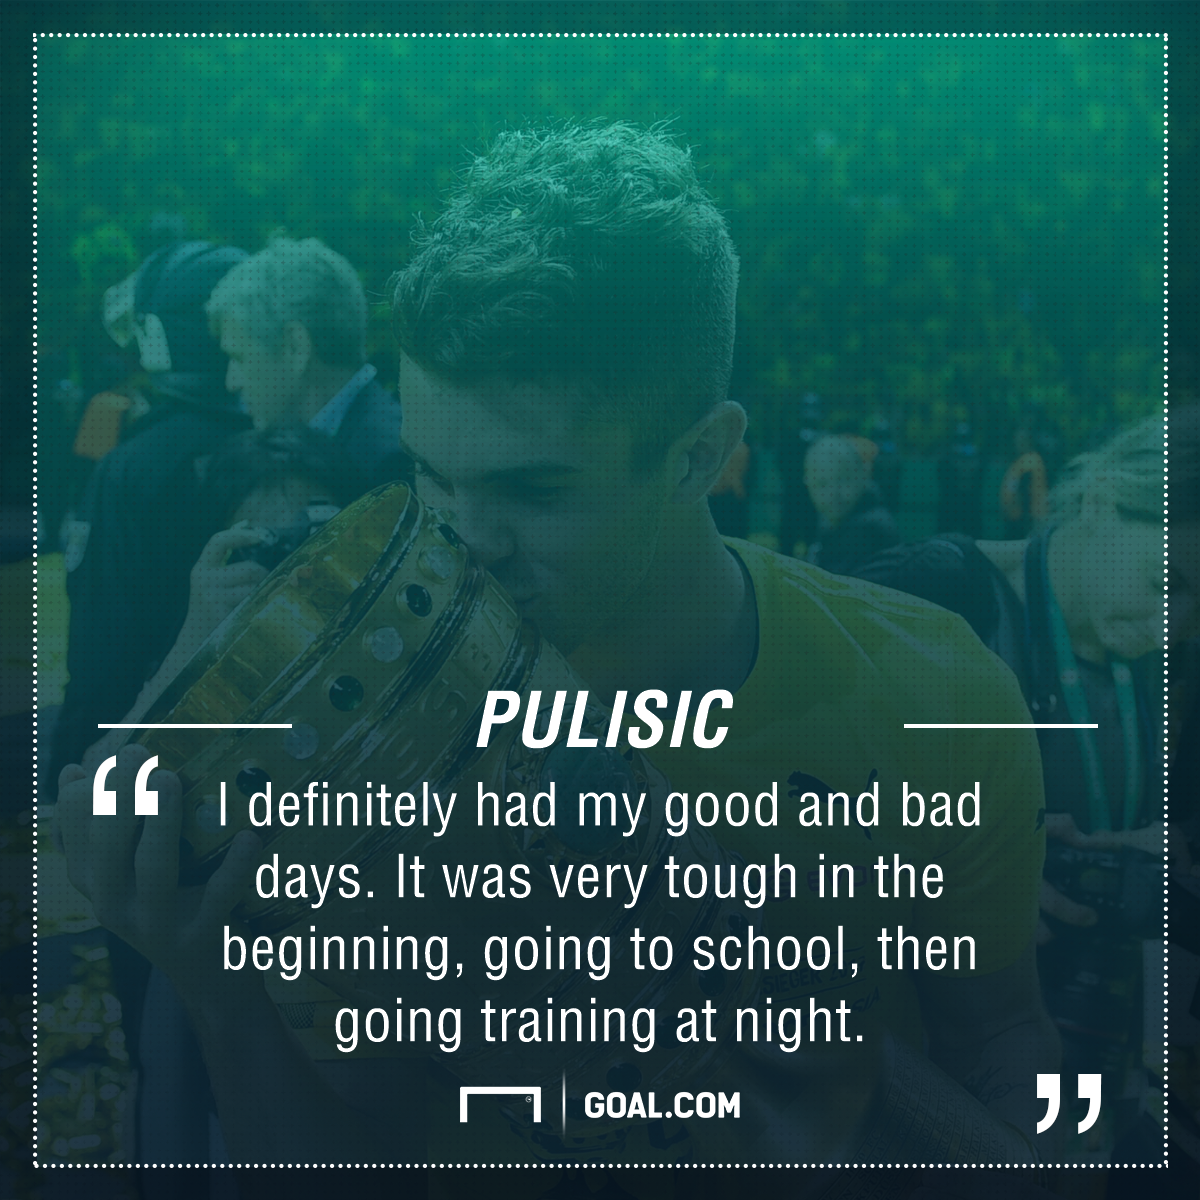 Christian Pulisic quote 06072017